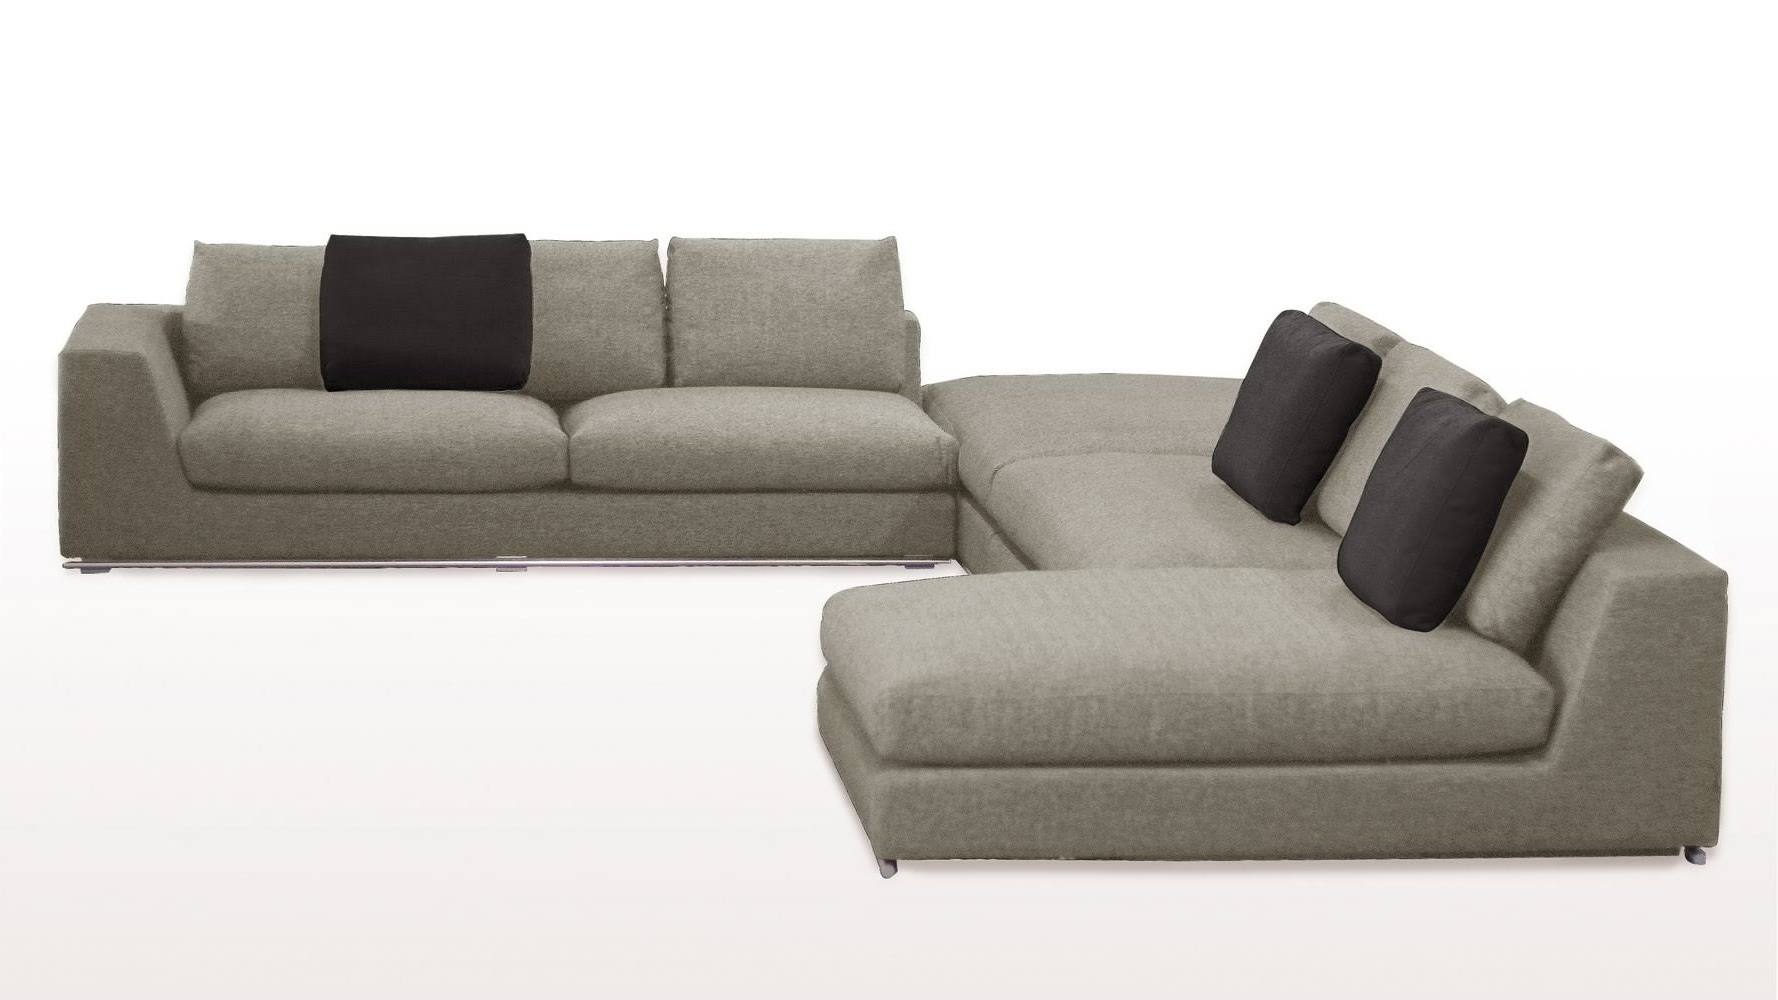 2018 Sectional Sofa Design: Armless Sectional Sofa Covers Small Spaces With Small Armless Sofas (View 1 of 15)